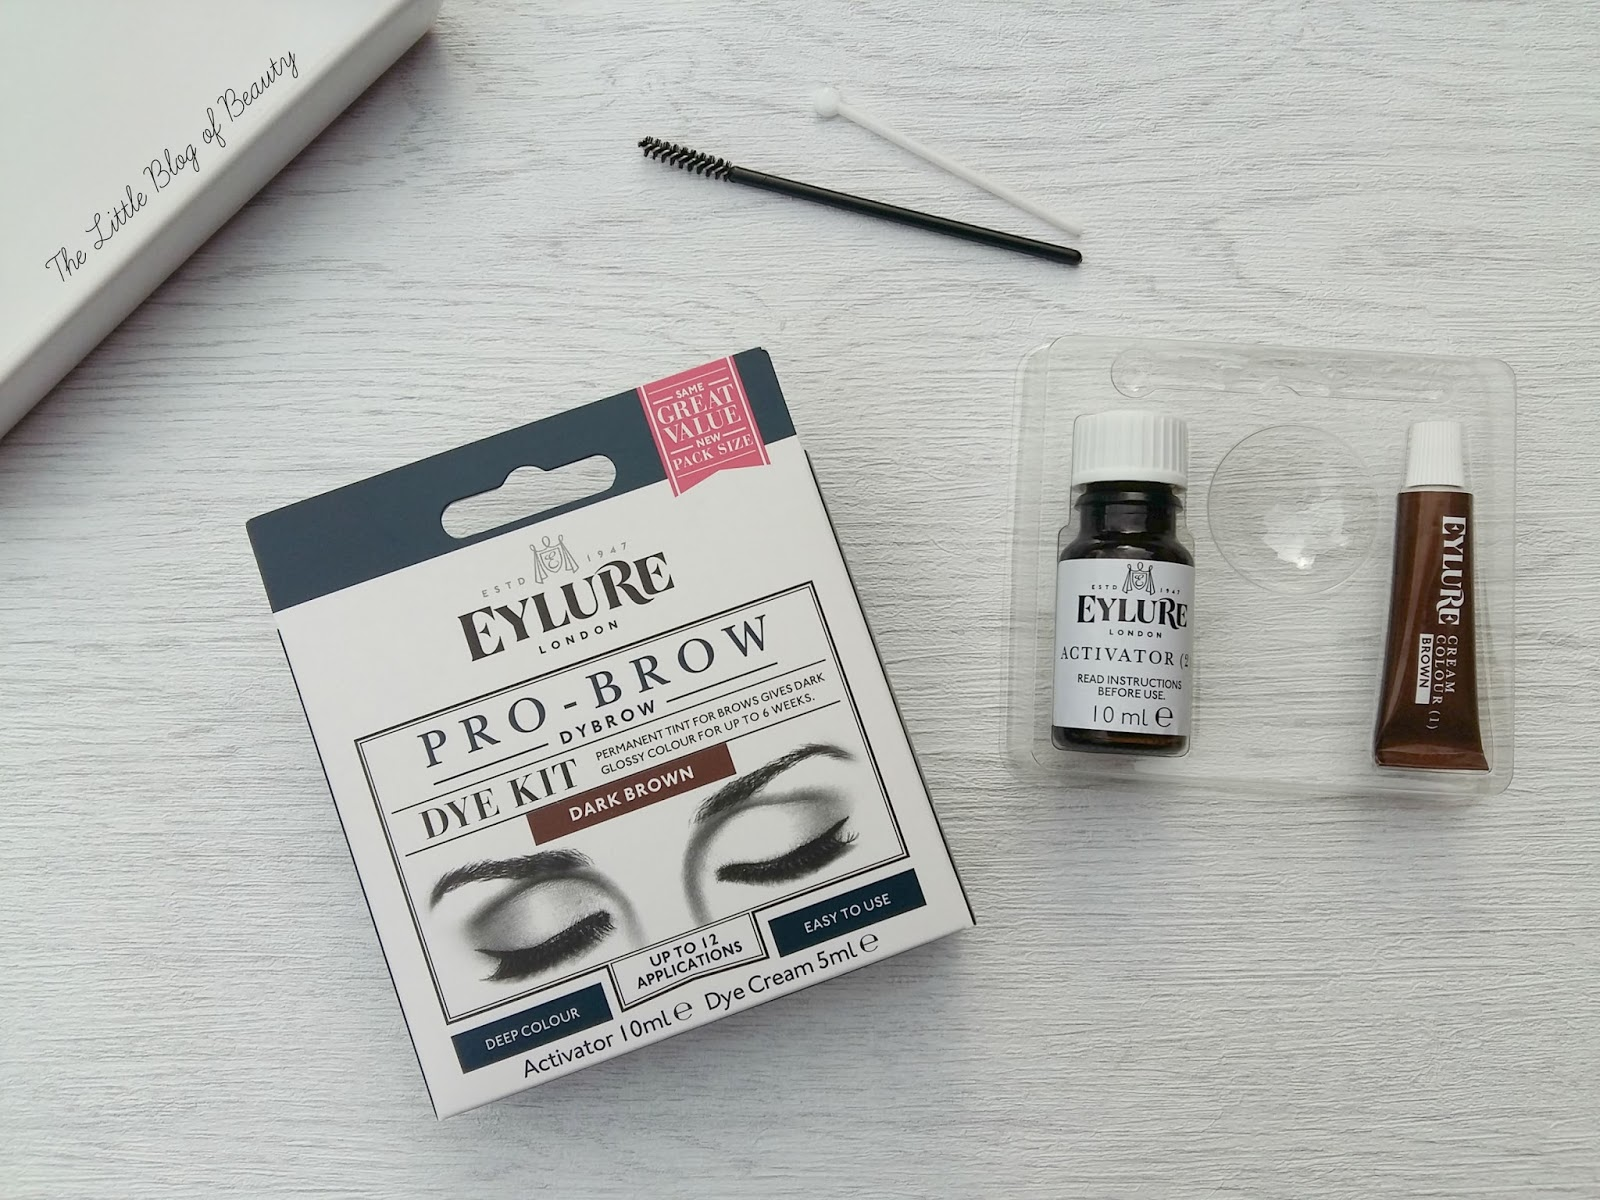 Eylure Pro Brow Dybrow Dye Kit Dark Brown The Little Blog Of Beauty